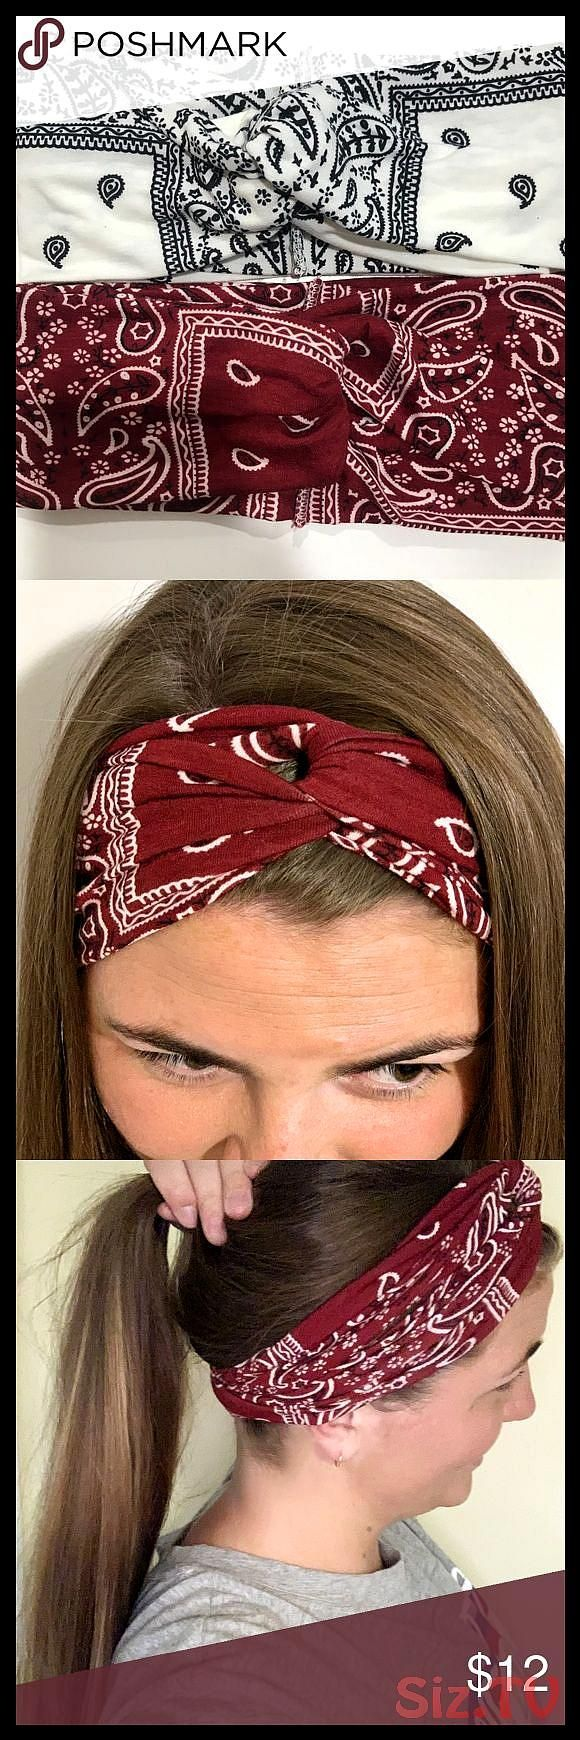 2 Pack  redwhite yoga headband cotton stretch Cotton stretch material is soft and comfortable  Red and white yoga twist headbands  Paisleybandan2 Pack  redwhite yoga headband cotton stretch Cotton stretch material is soft and comfortable  Red and white yoga twist headbands  PaisleybandanBren Save Images Bren 2 Pack  redwhite yoga headband cotton stretch Cotton stretch material is soft and comfortable  Red  #bandan #comfortable #cotton #headband #headbands #material #messybunoutfitoffice #paisley #yogaheadband